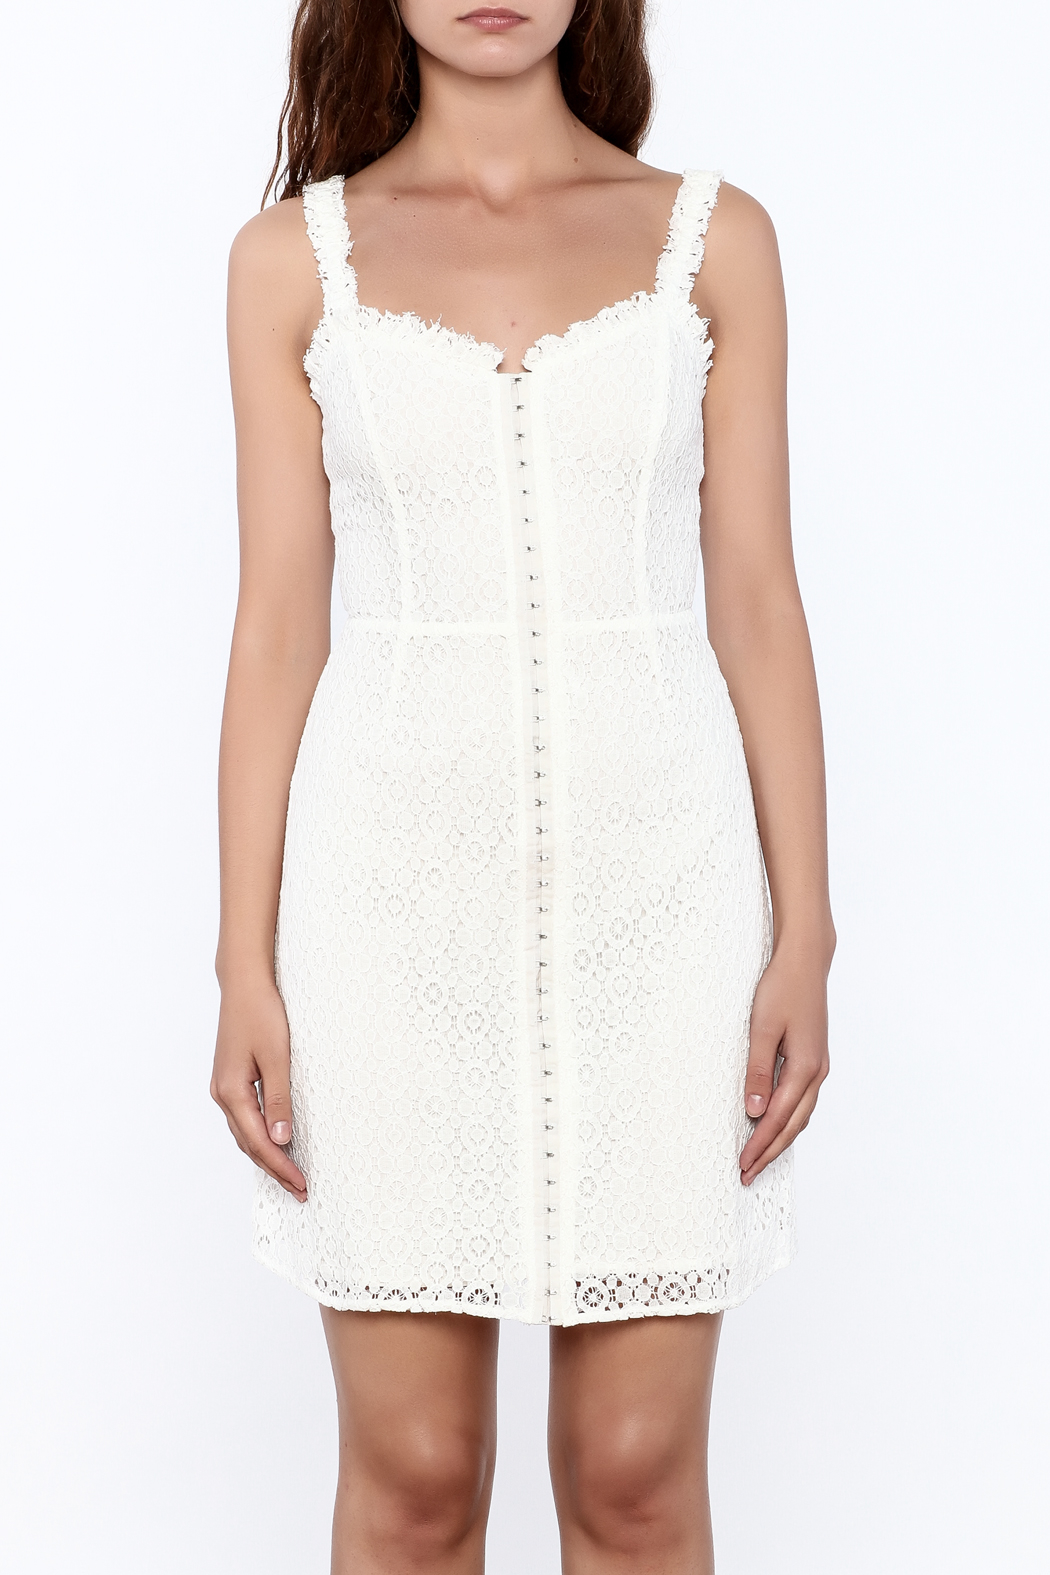 storia Crochet Dress - Front Full Image